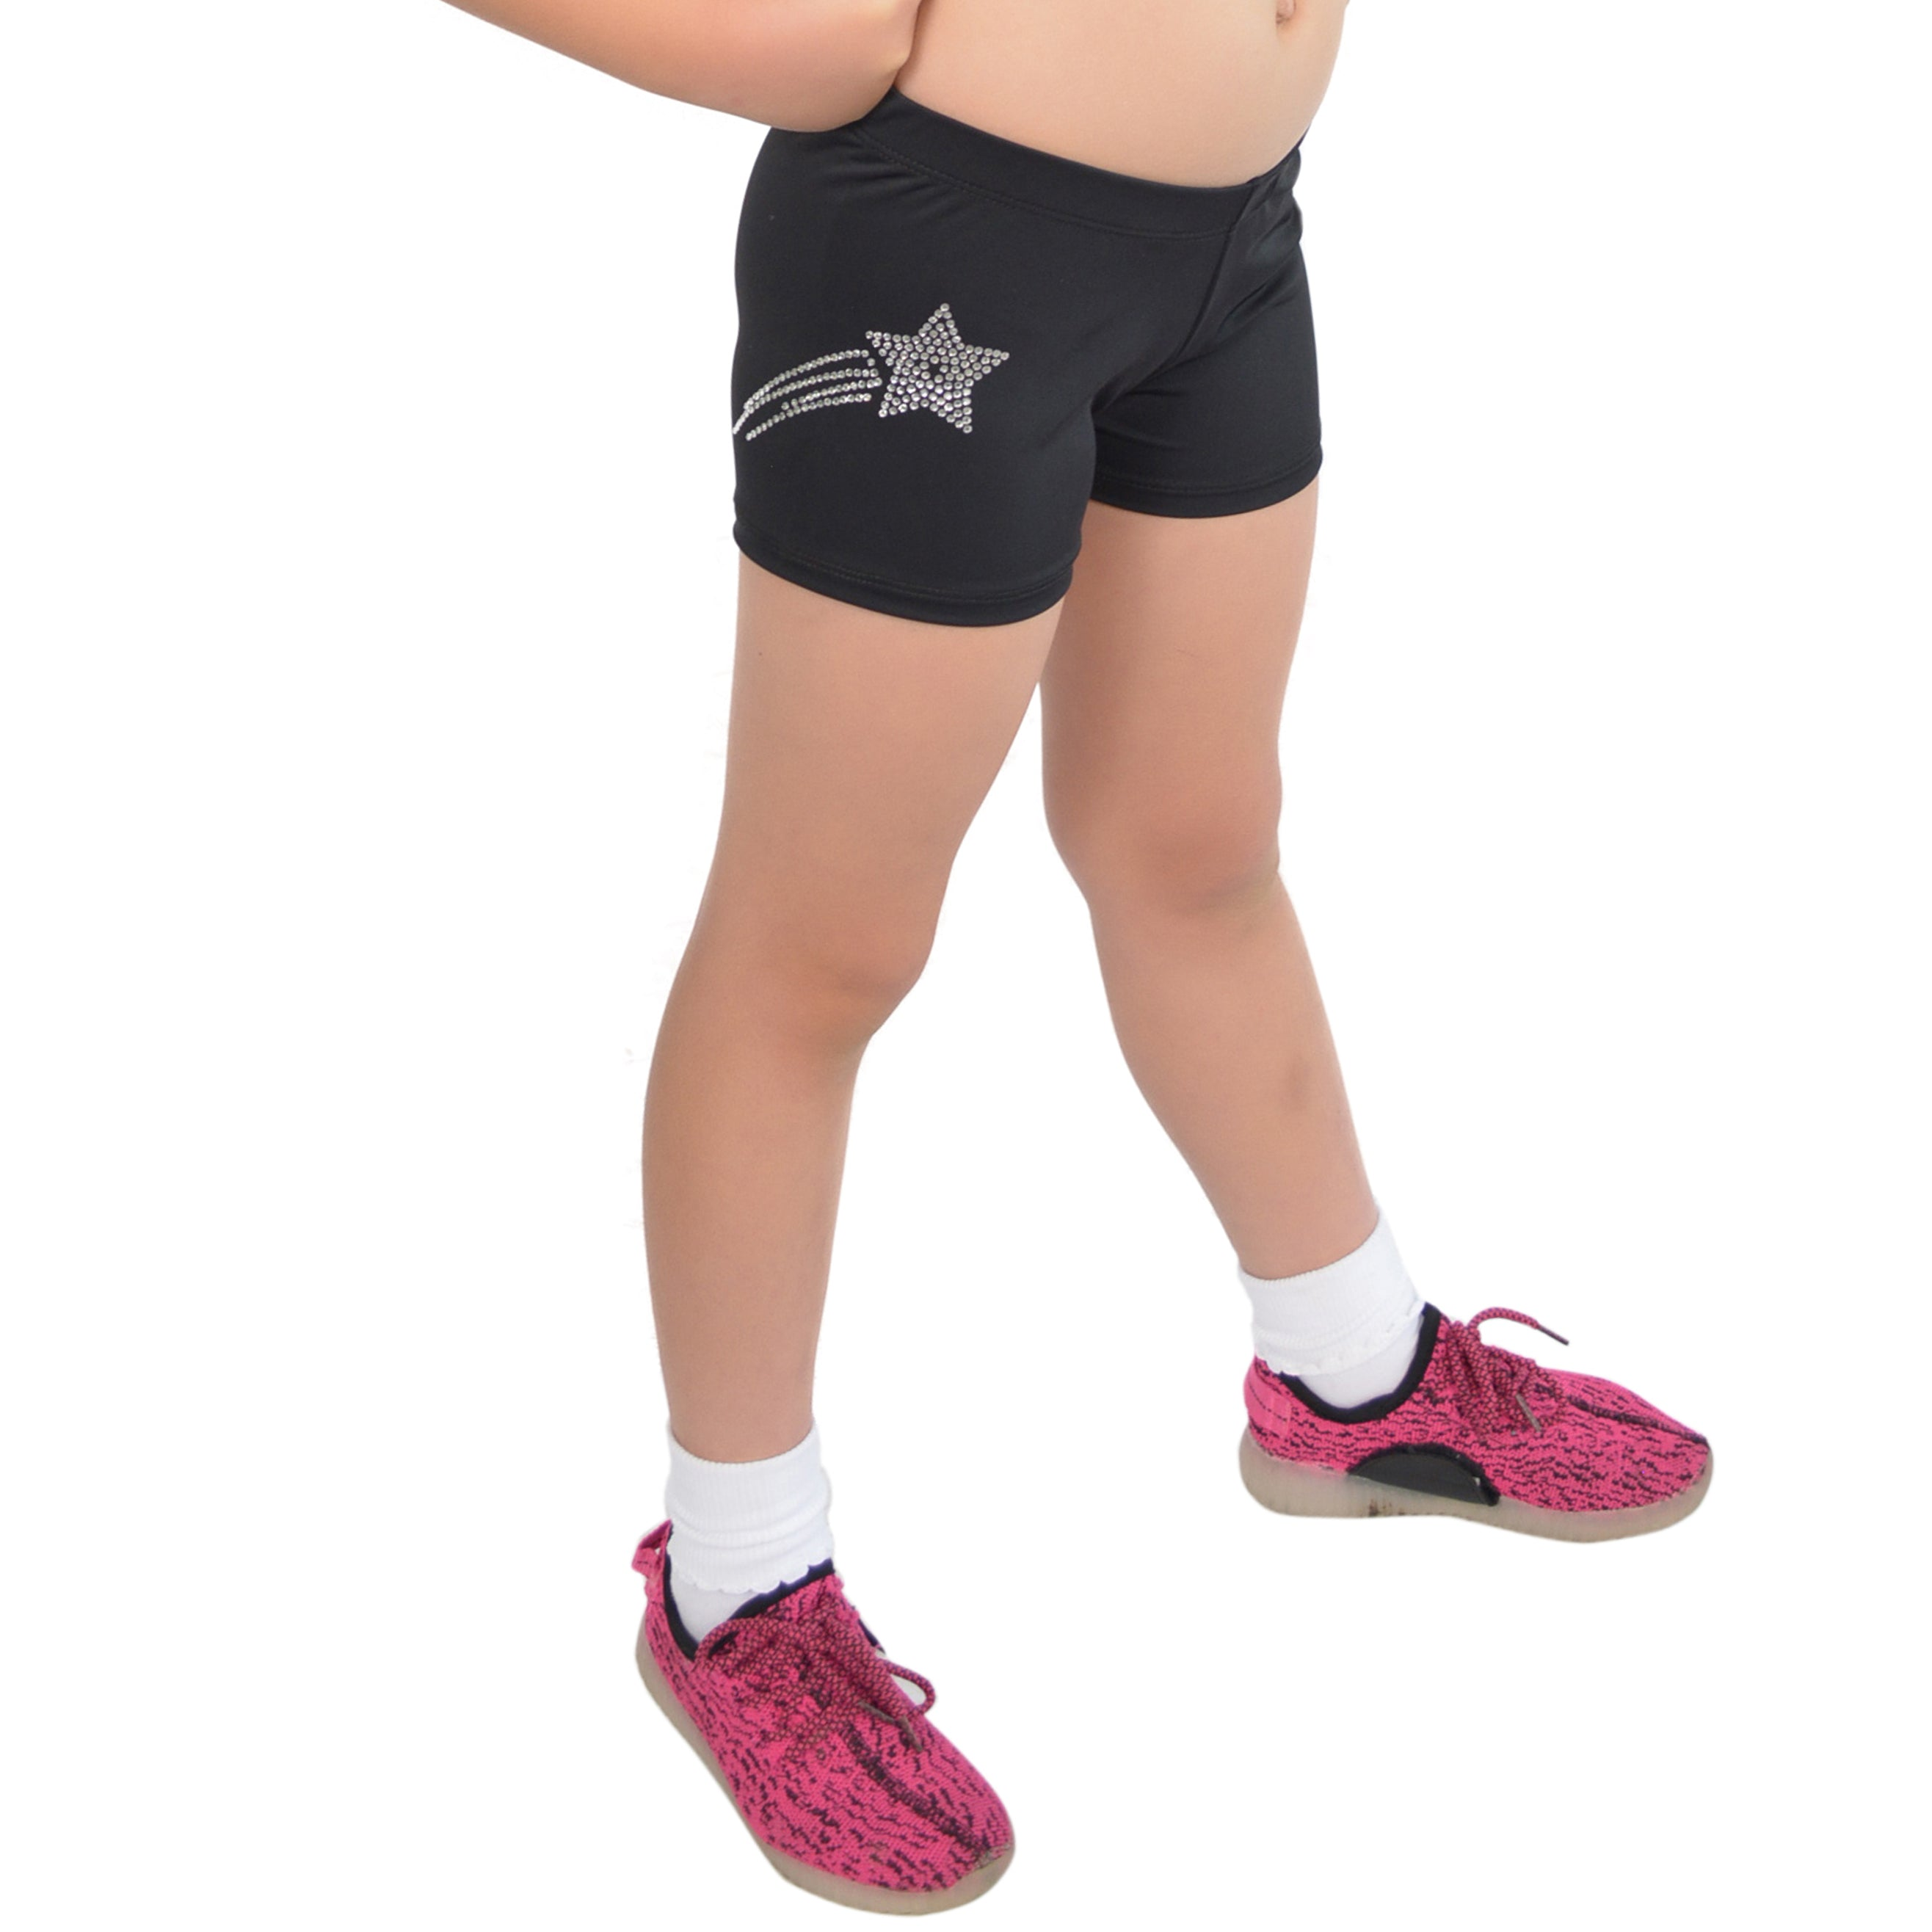 Girl's Spandex Boy Cut Rhinestone Booty Shorts